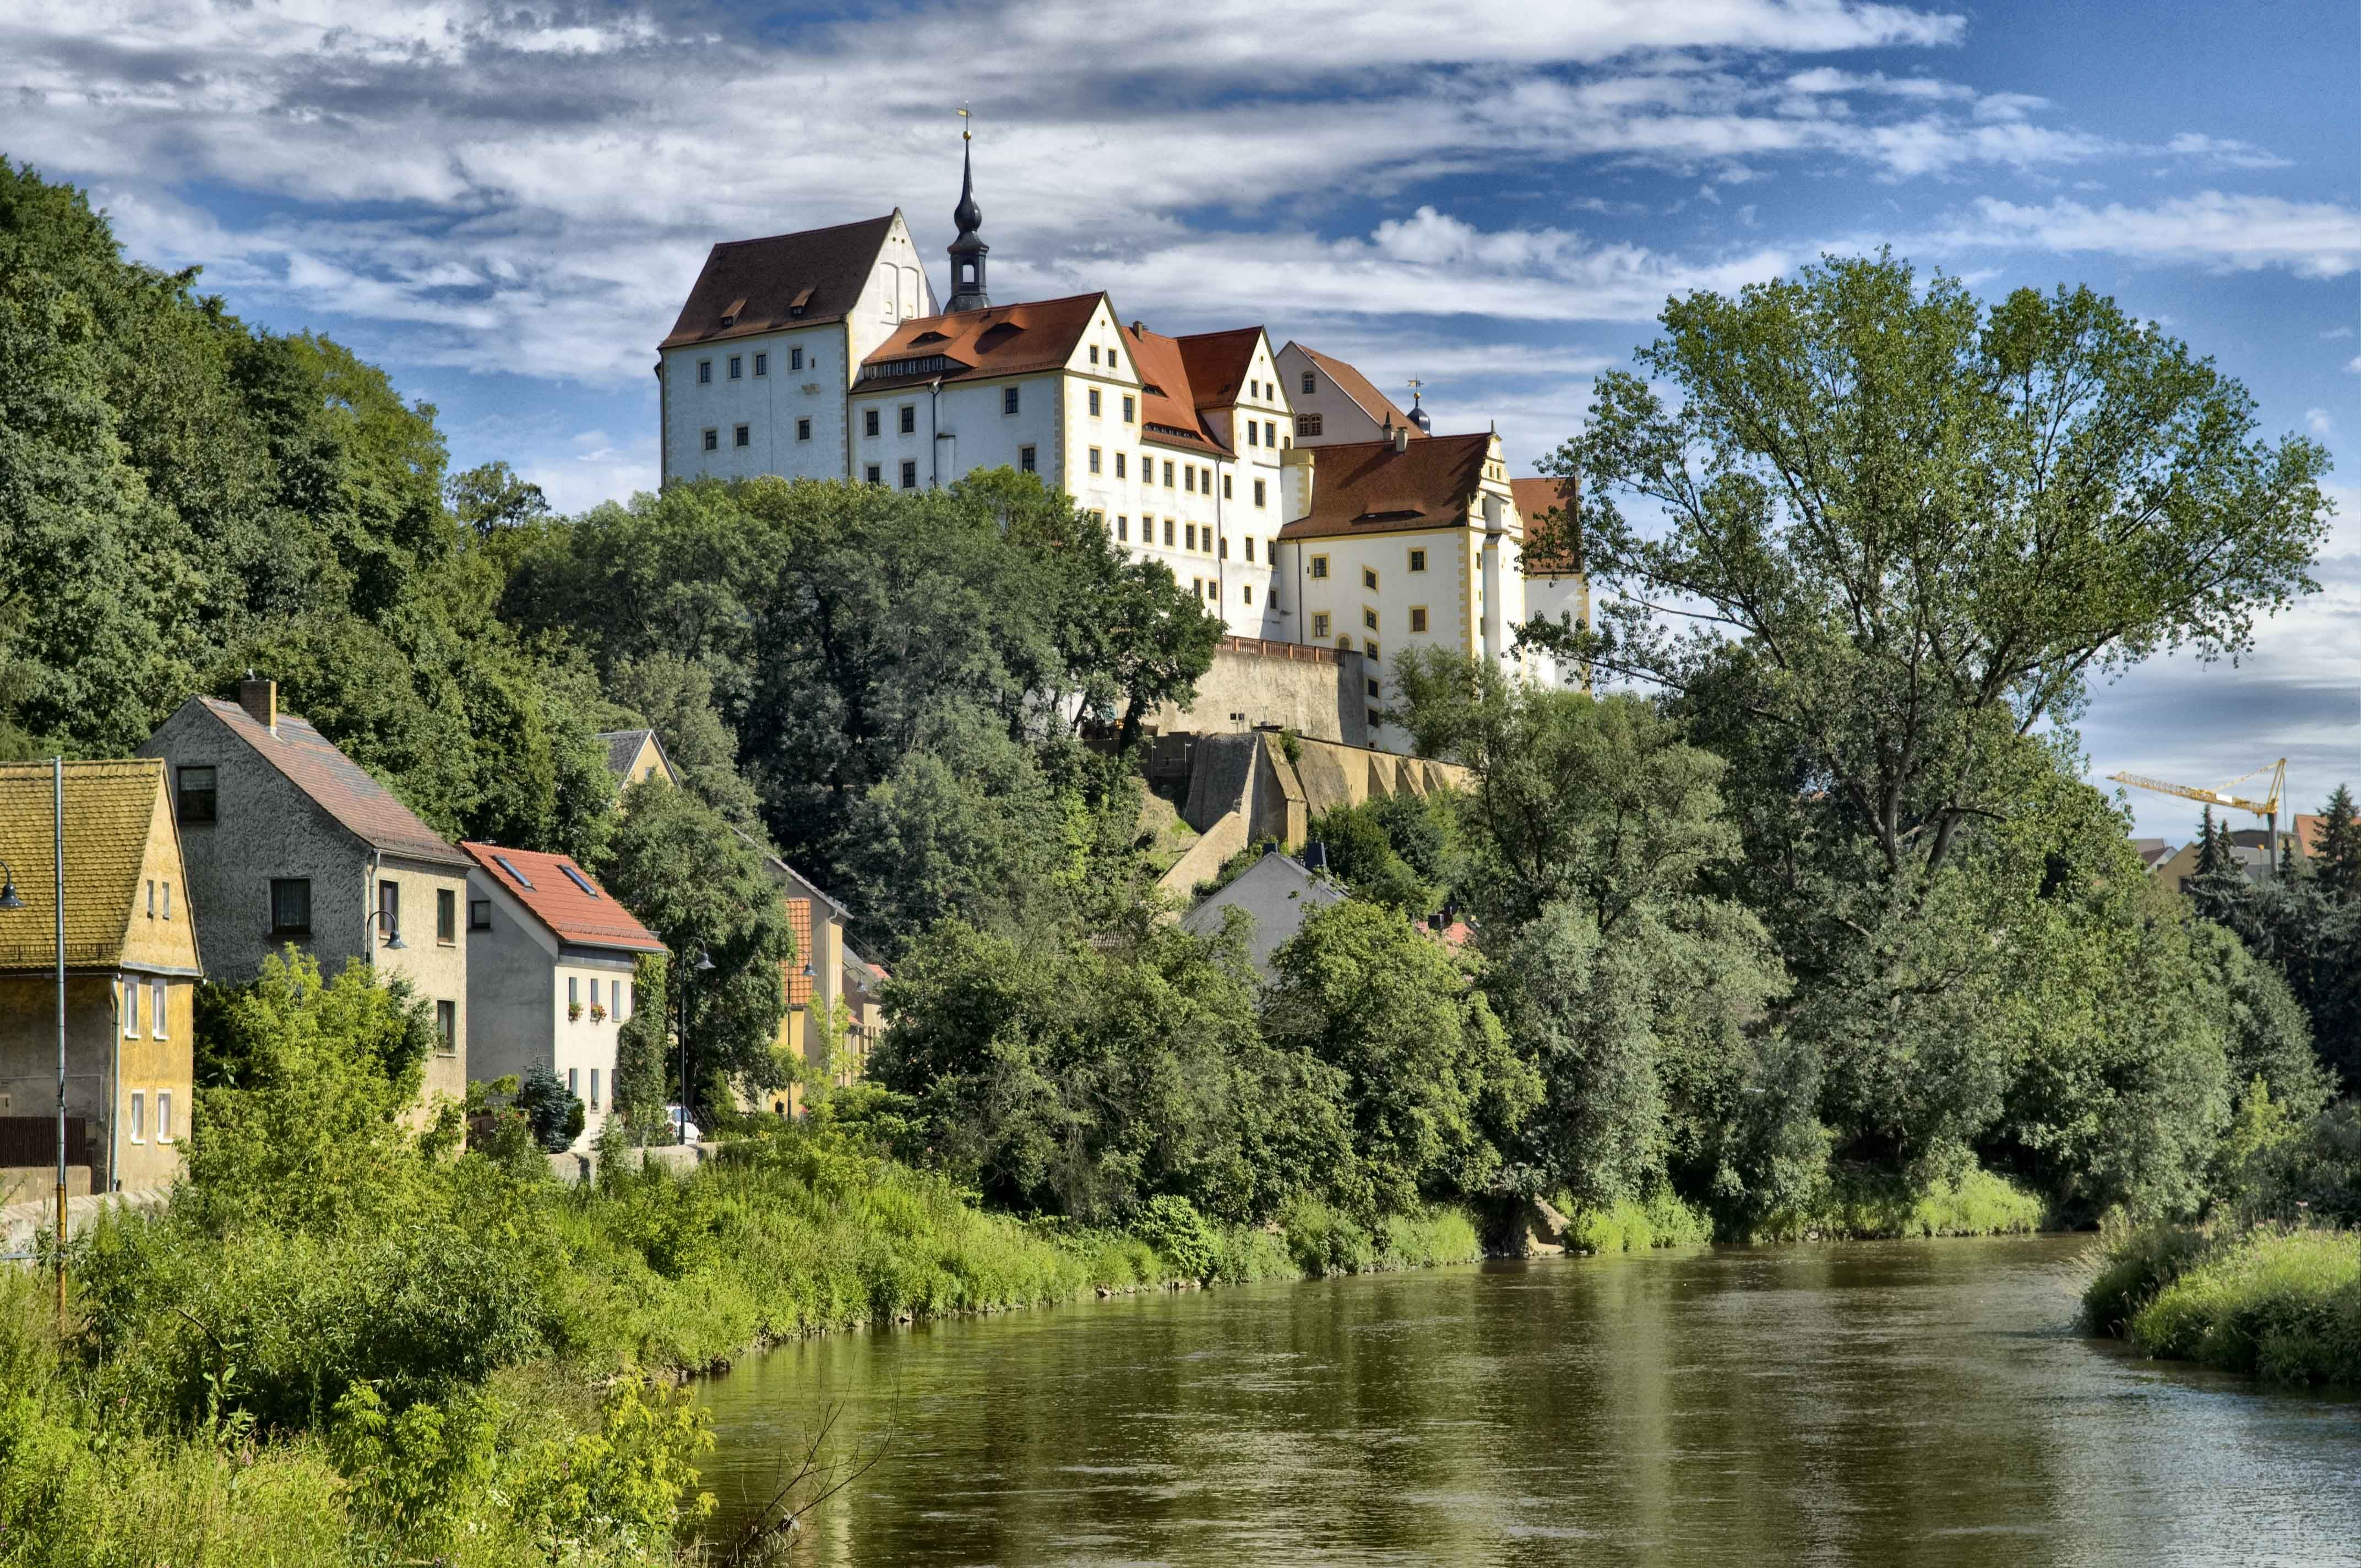 Top 10 Medieval Castles That You Must Visit And See For Yourself Germany Castles Castle Germany